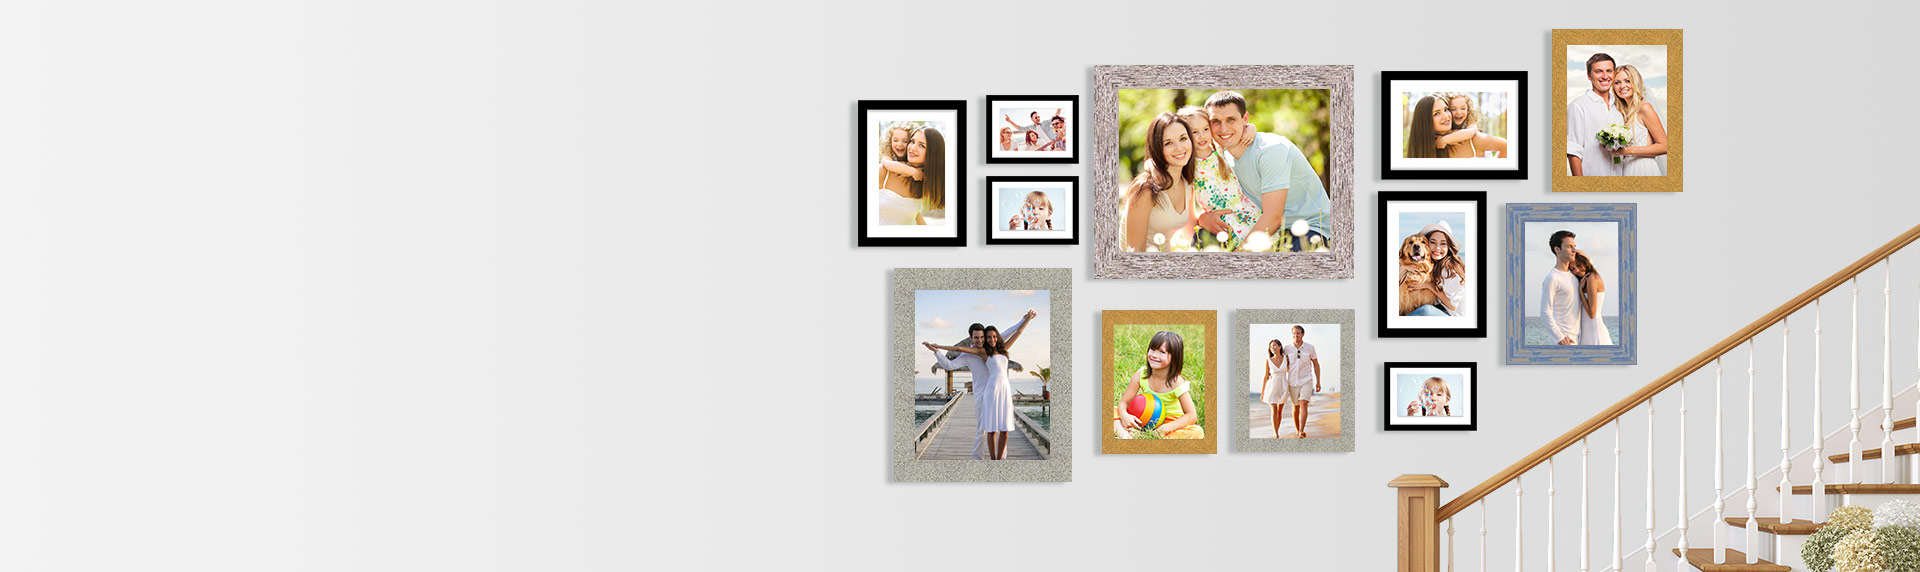 Personalized canvas print for wall display!